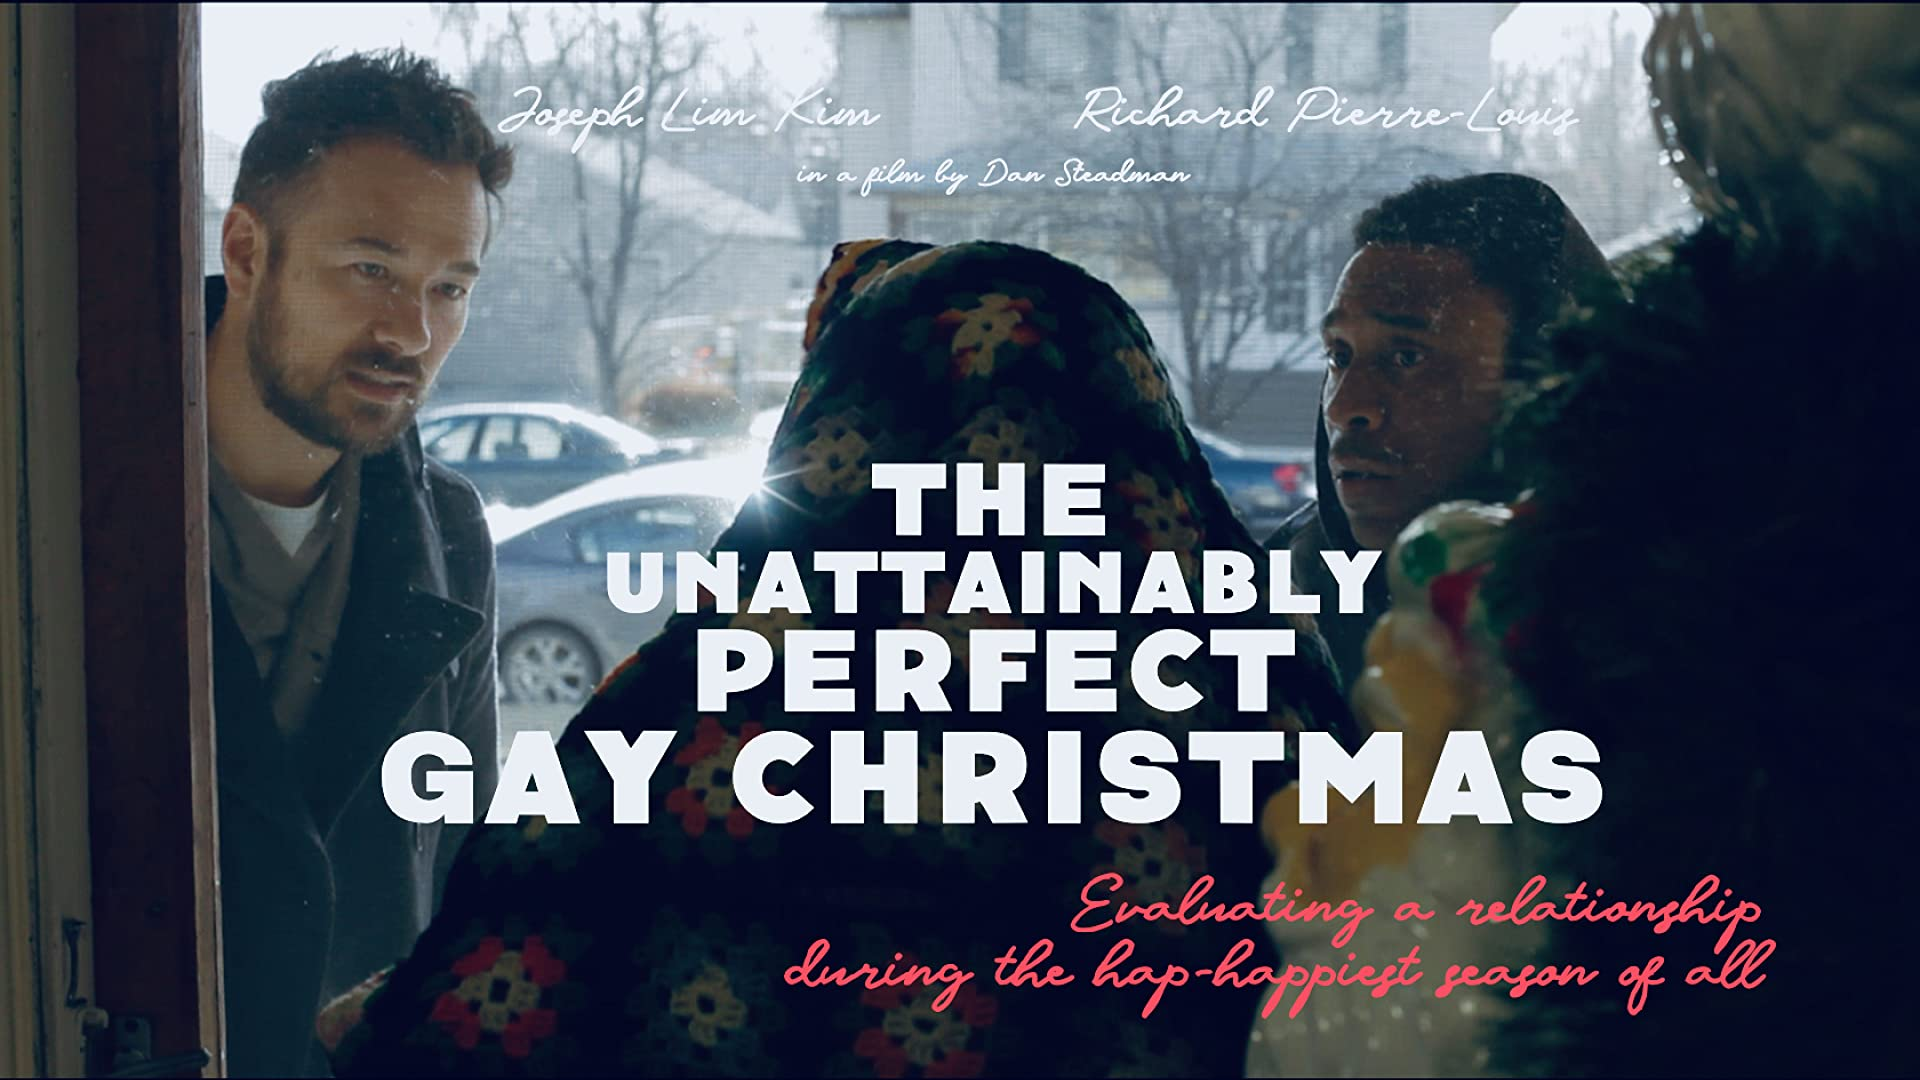 The Unattainably Perfect Gay Christmas